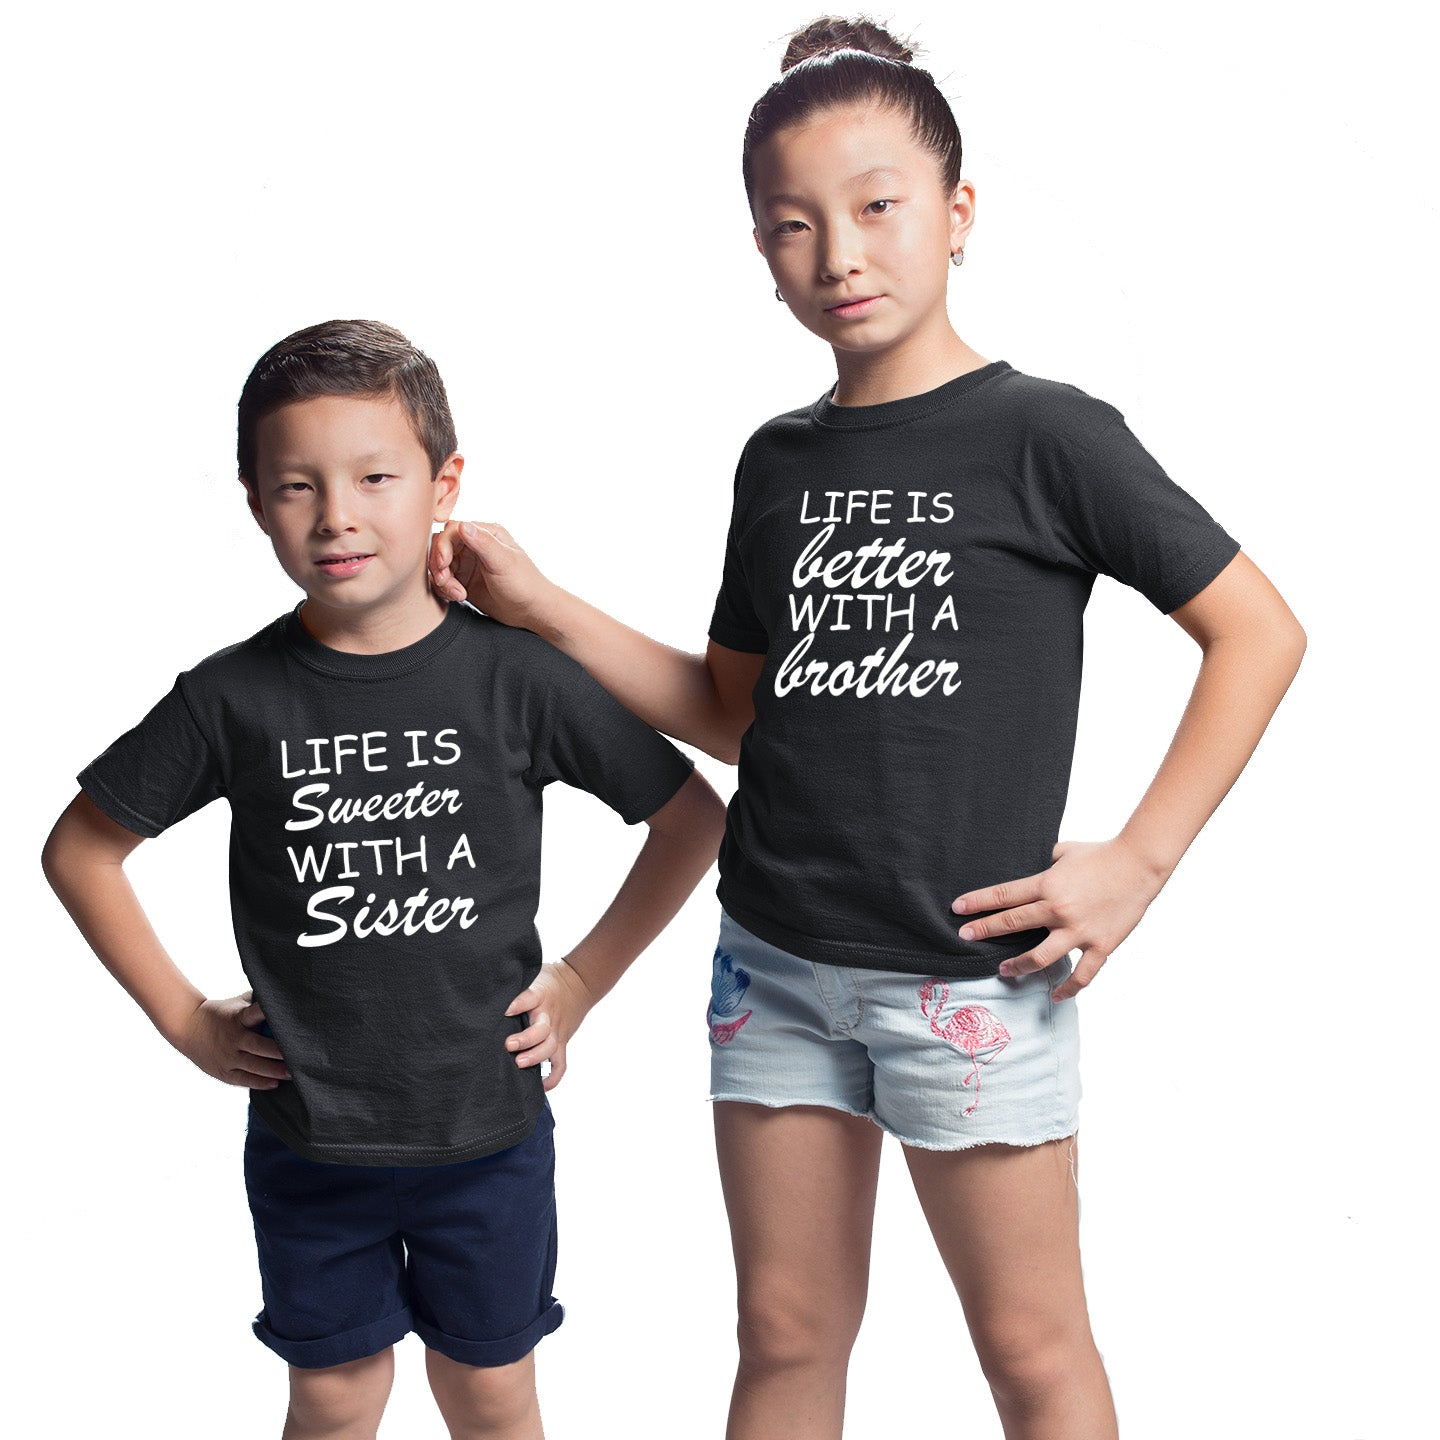 Sprinklecart Life is Better with A Brother Life is Sweeter with A Sister Printed Kids T Shirt Combo (Black)